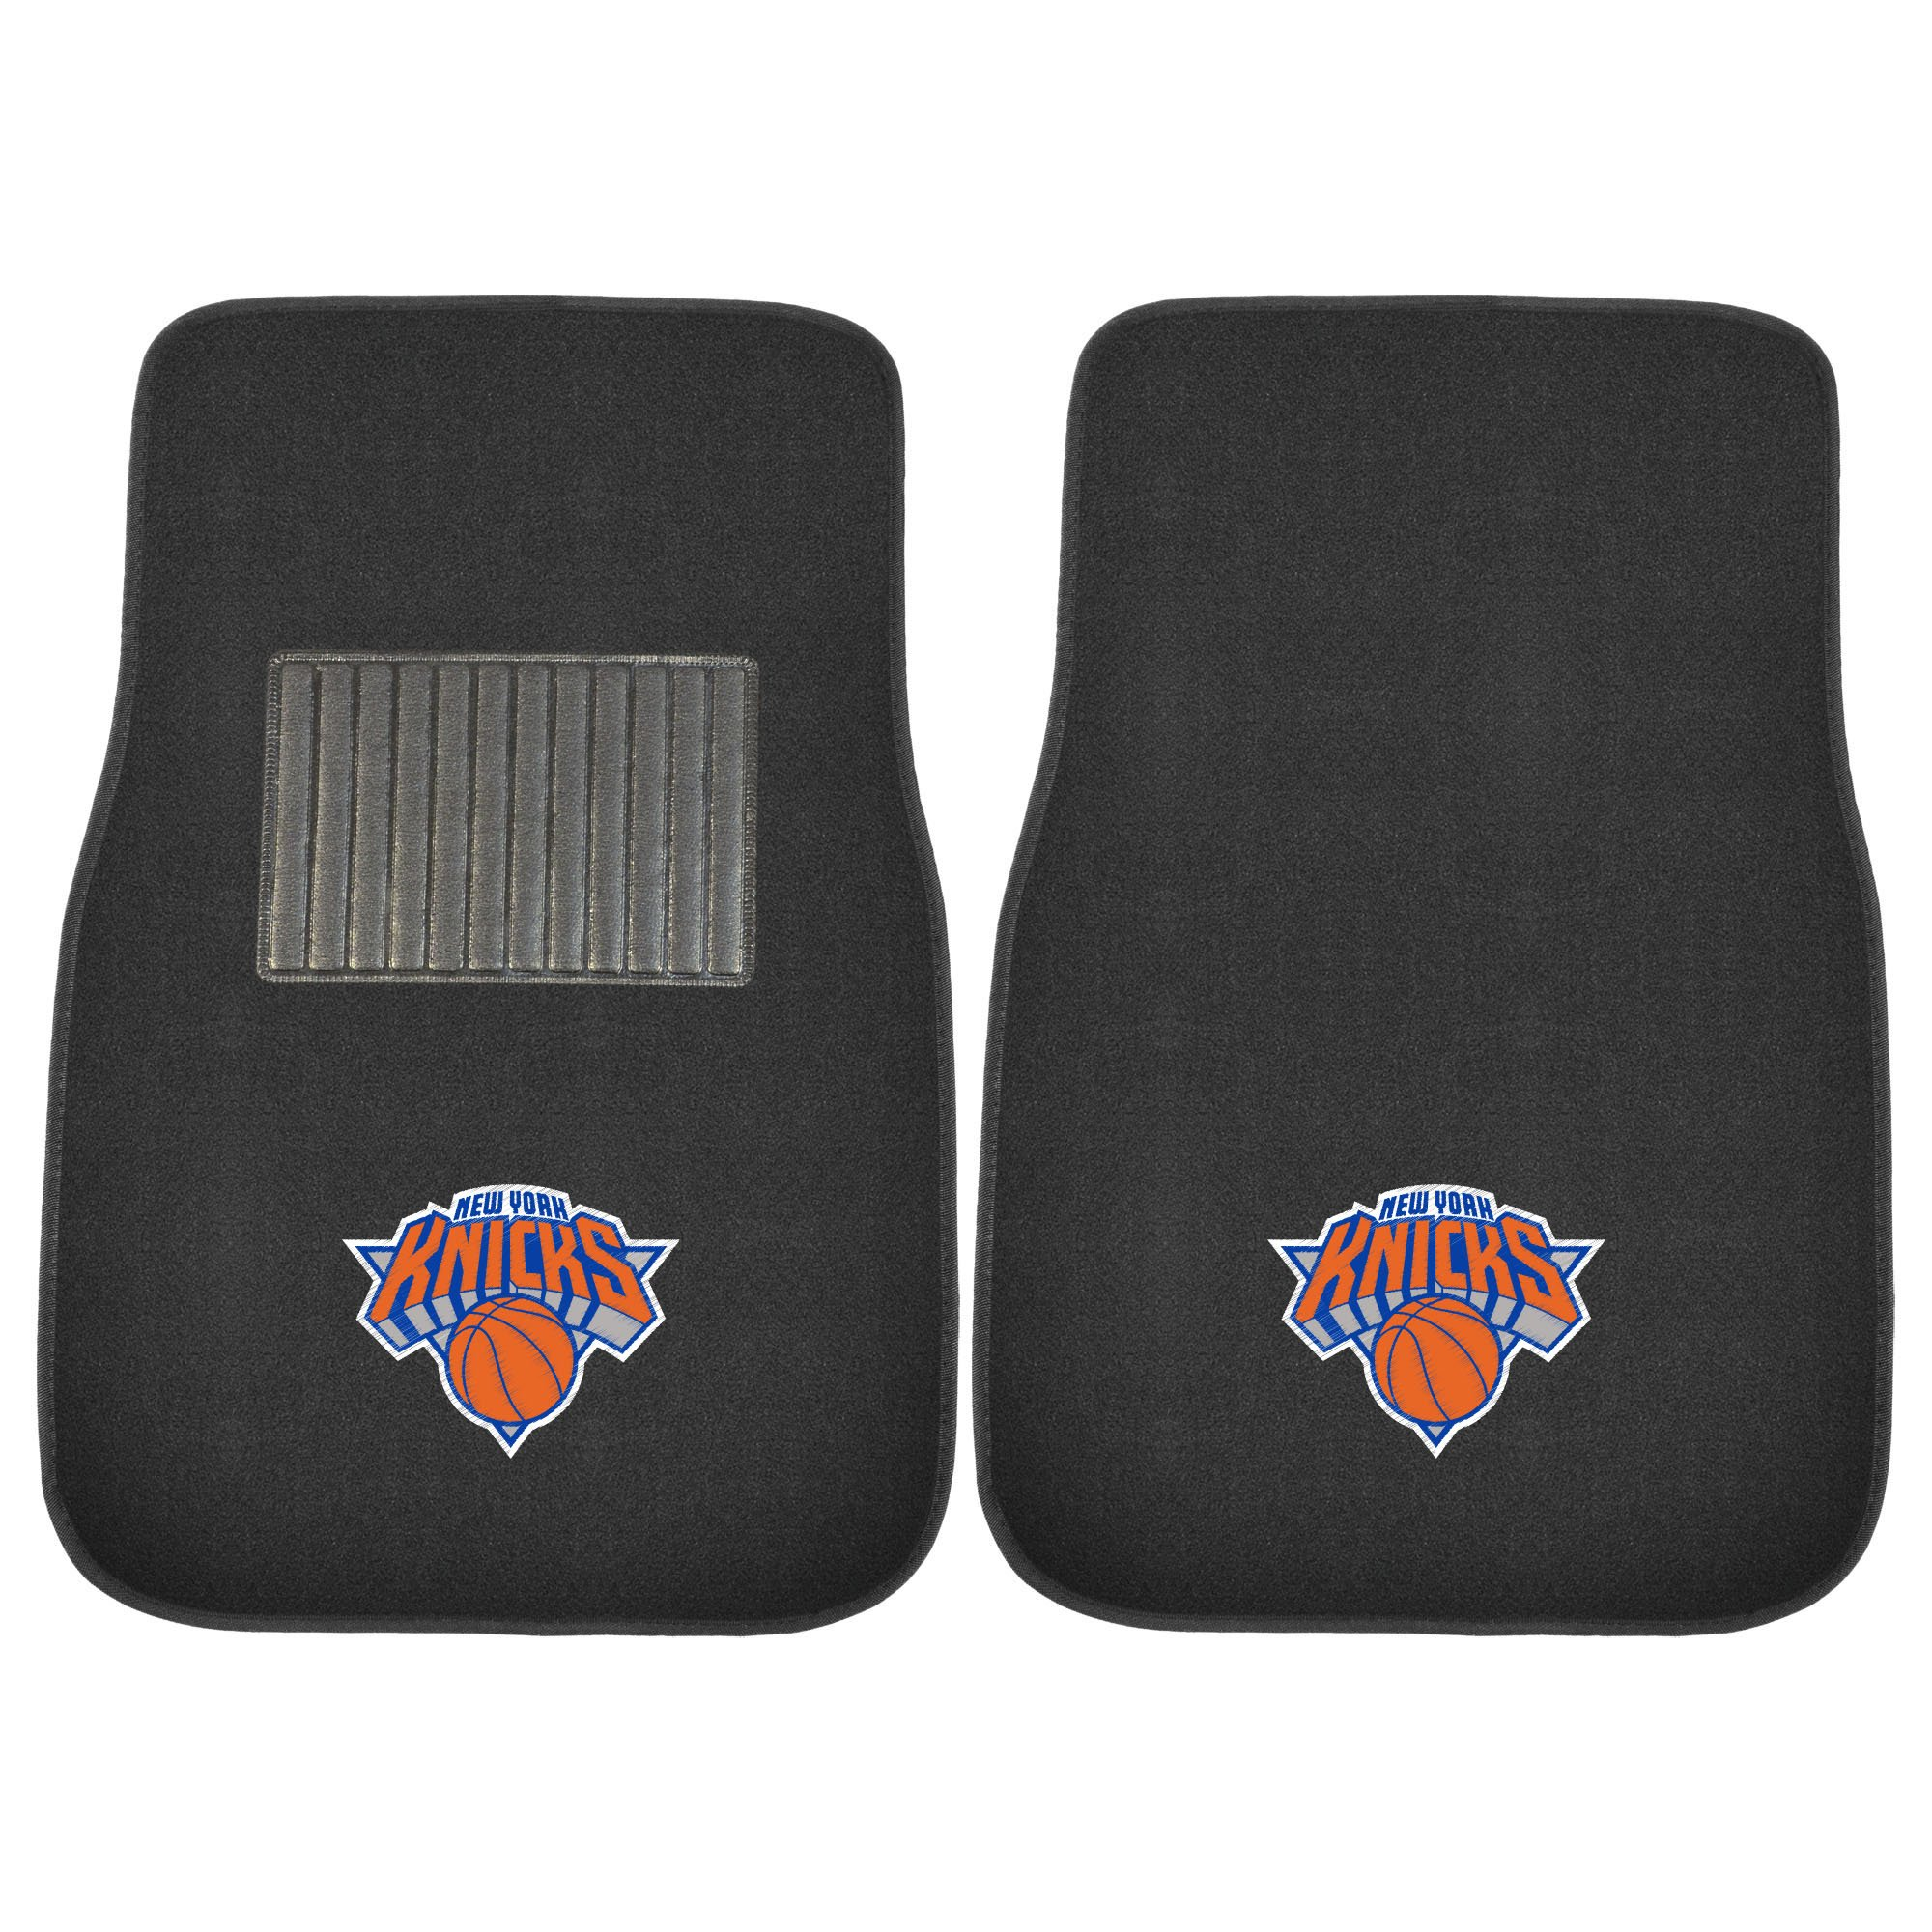 Fanmats 17614 NBA New York Knicks 2-Piece Embroidered Car Mat by Fanmats